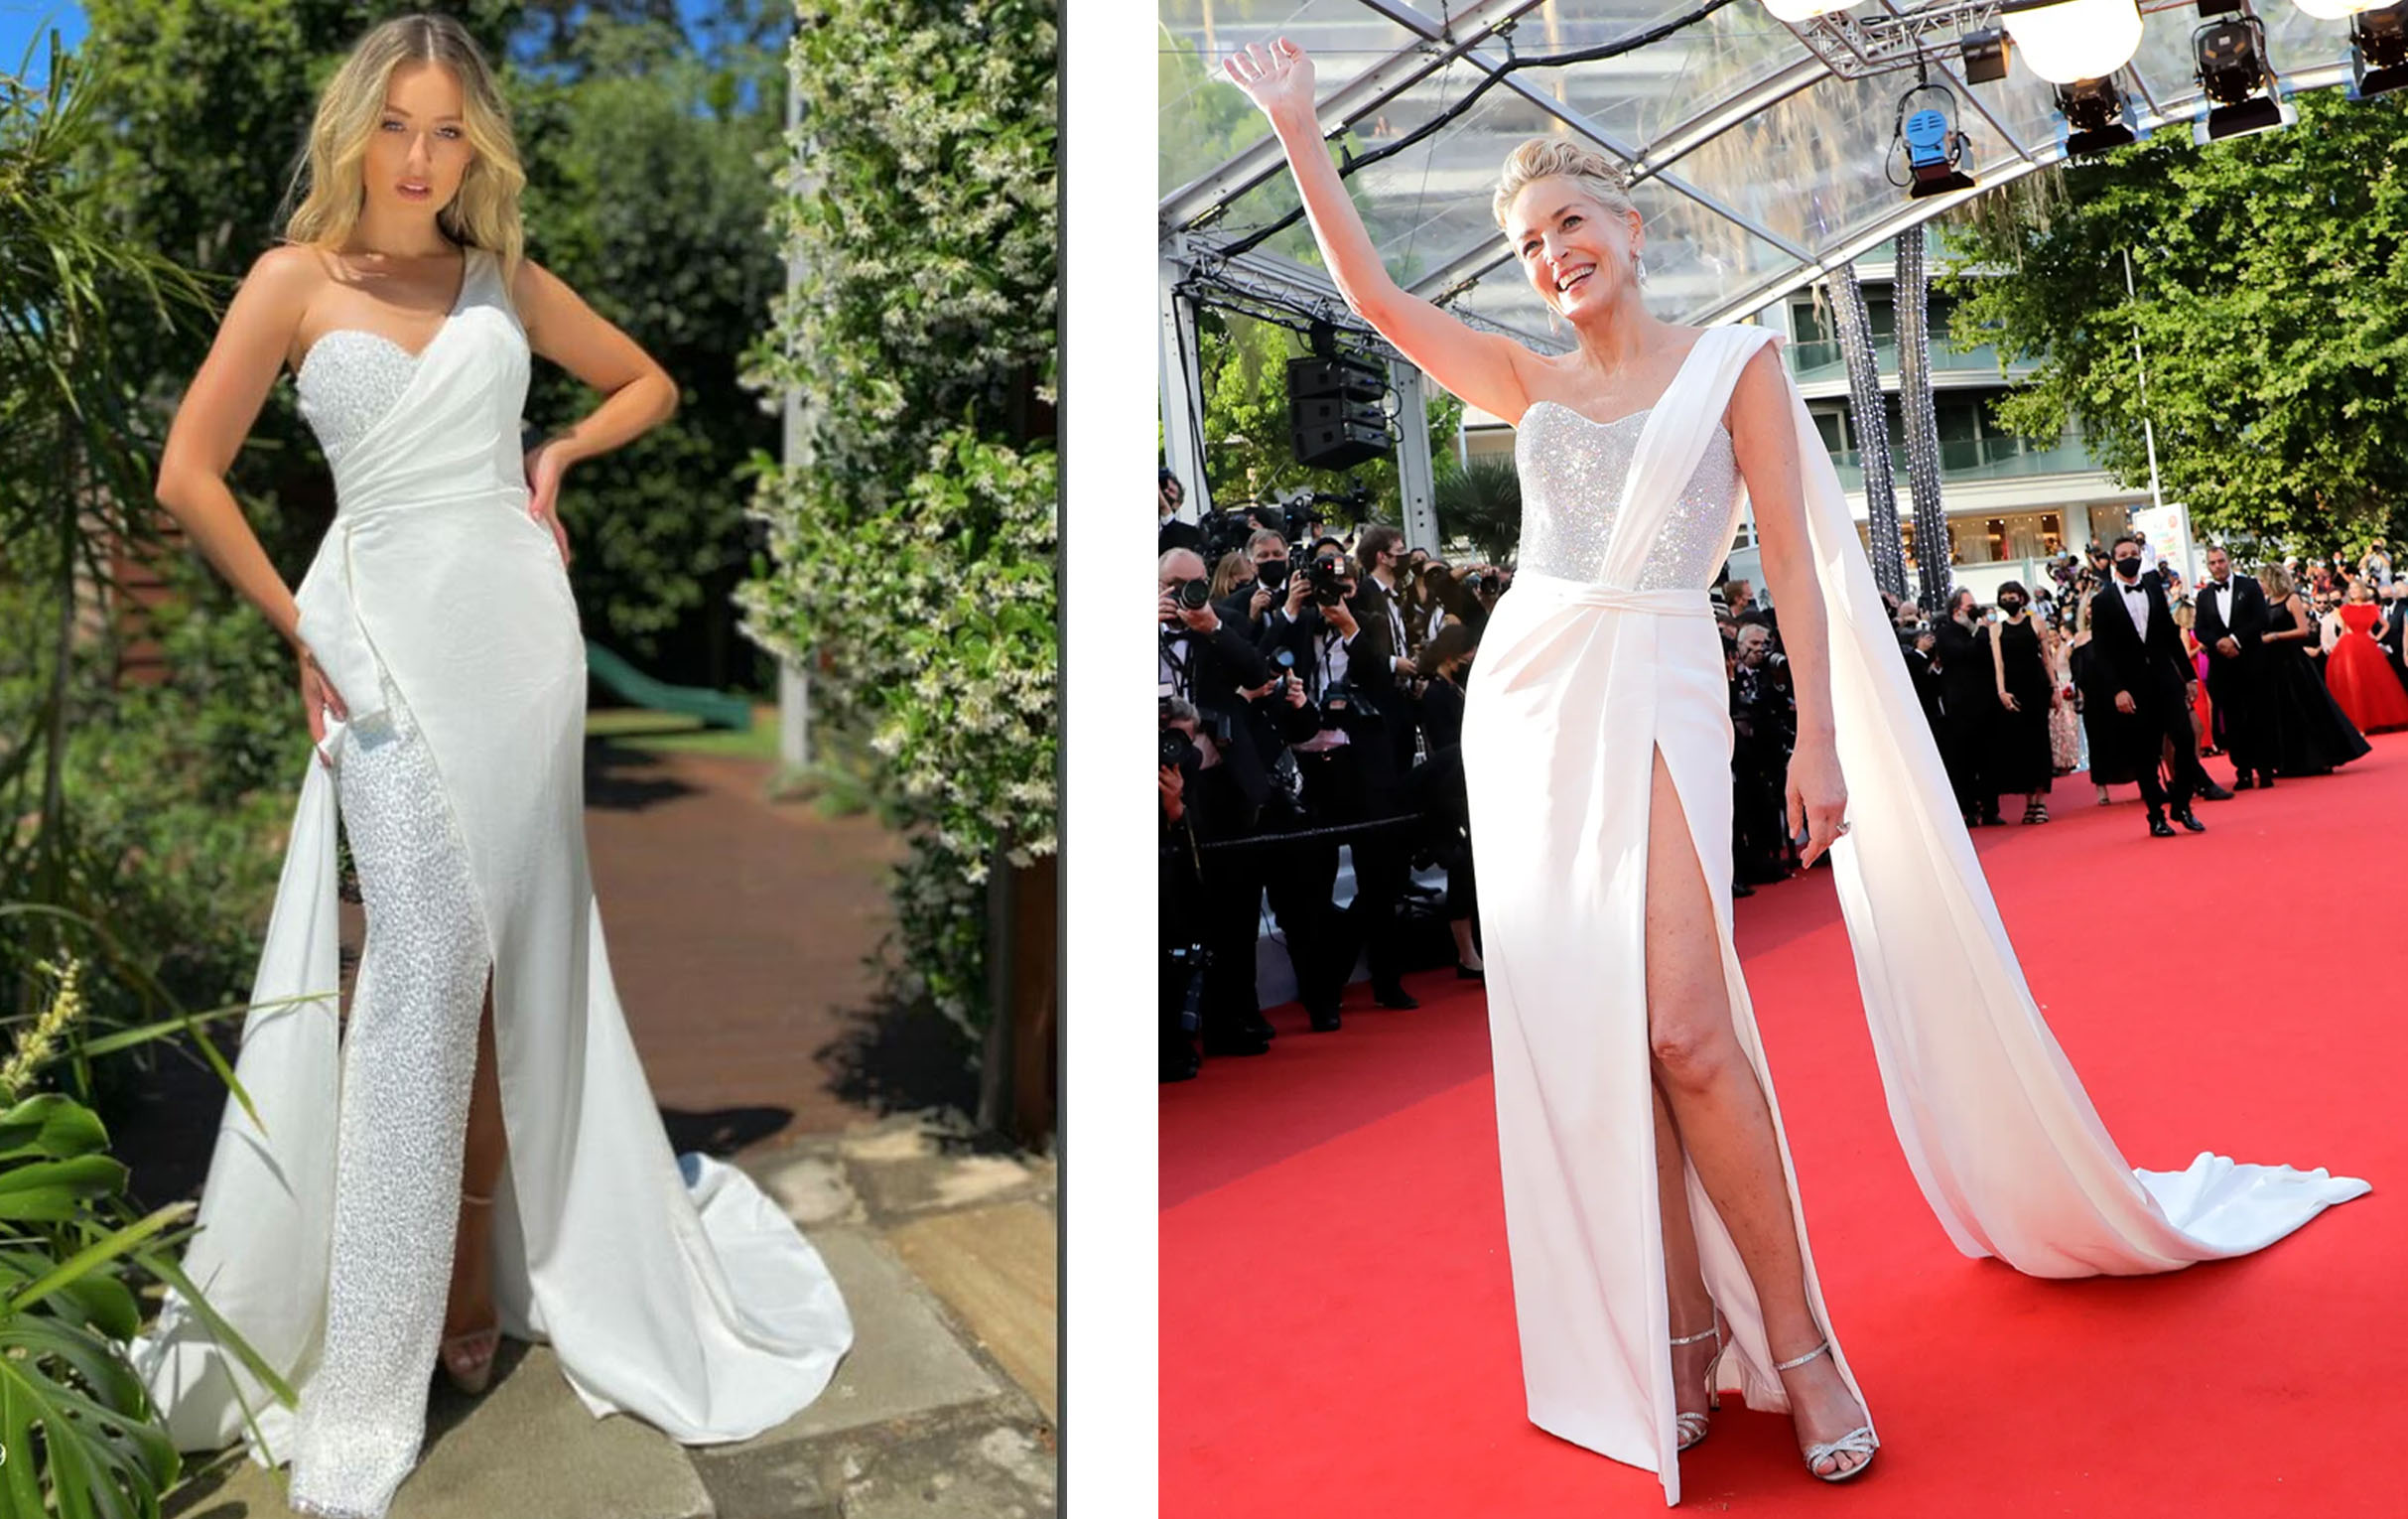 2021 Cannes Red Carpet at Fashionably Yours: Jadore's Nia Jx5009 vs Sharon Stone in Dolce and Gabbana